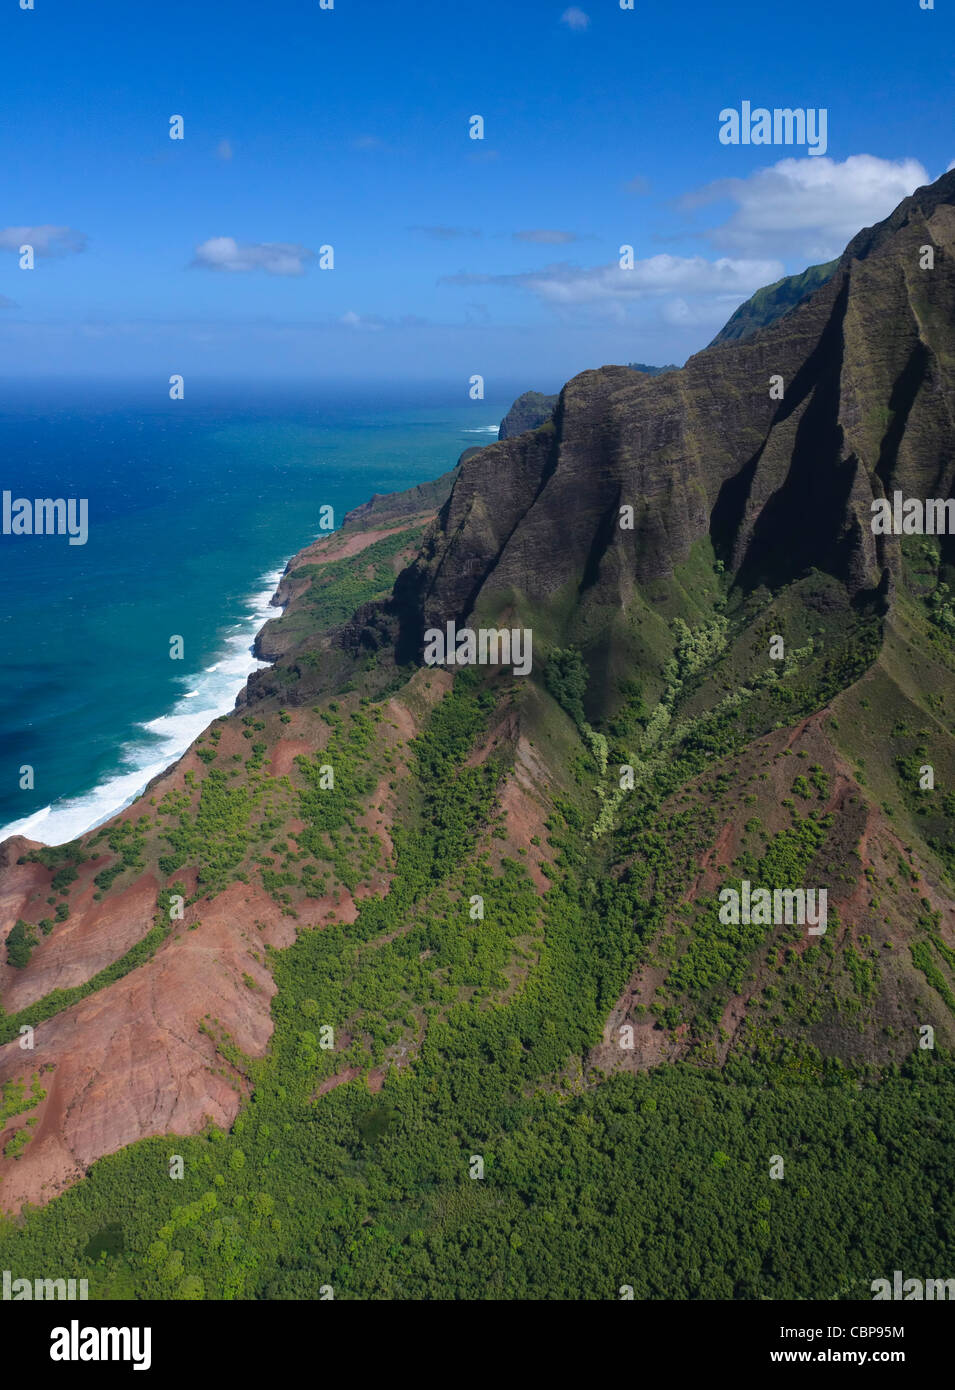 Na Pali coast, Kauai, Hawaii, USA - Stock Image